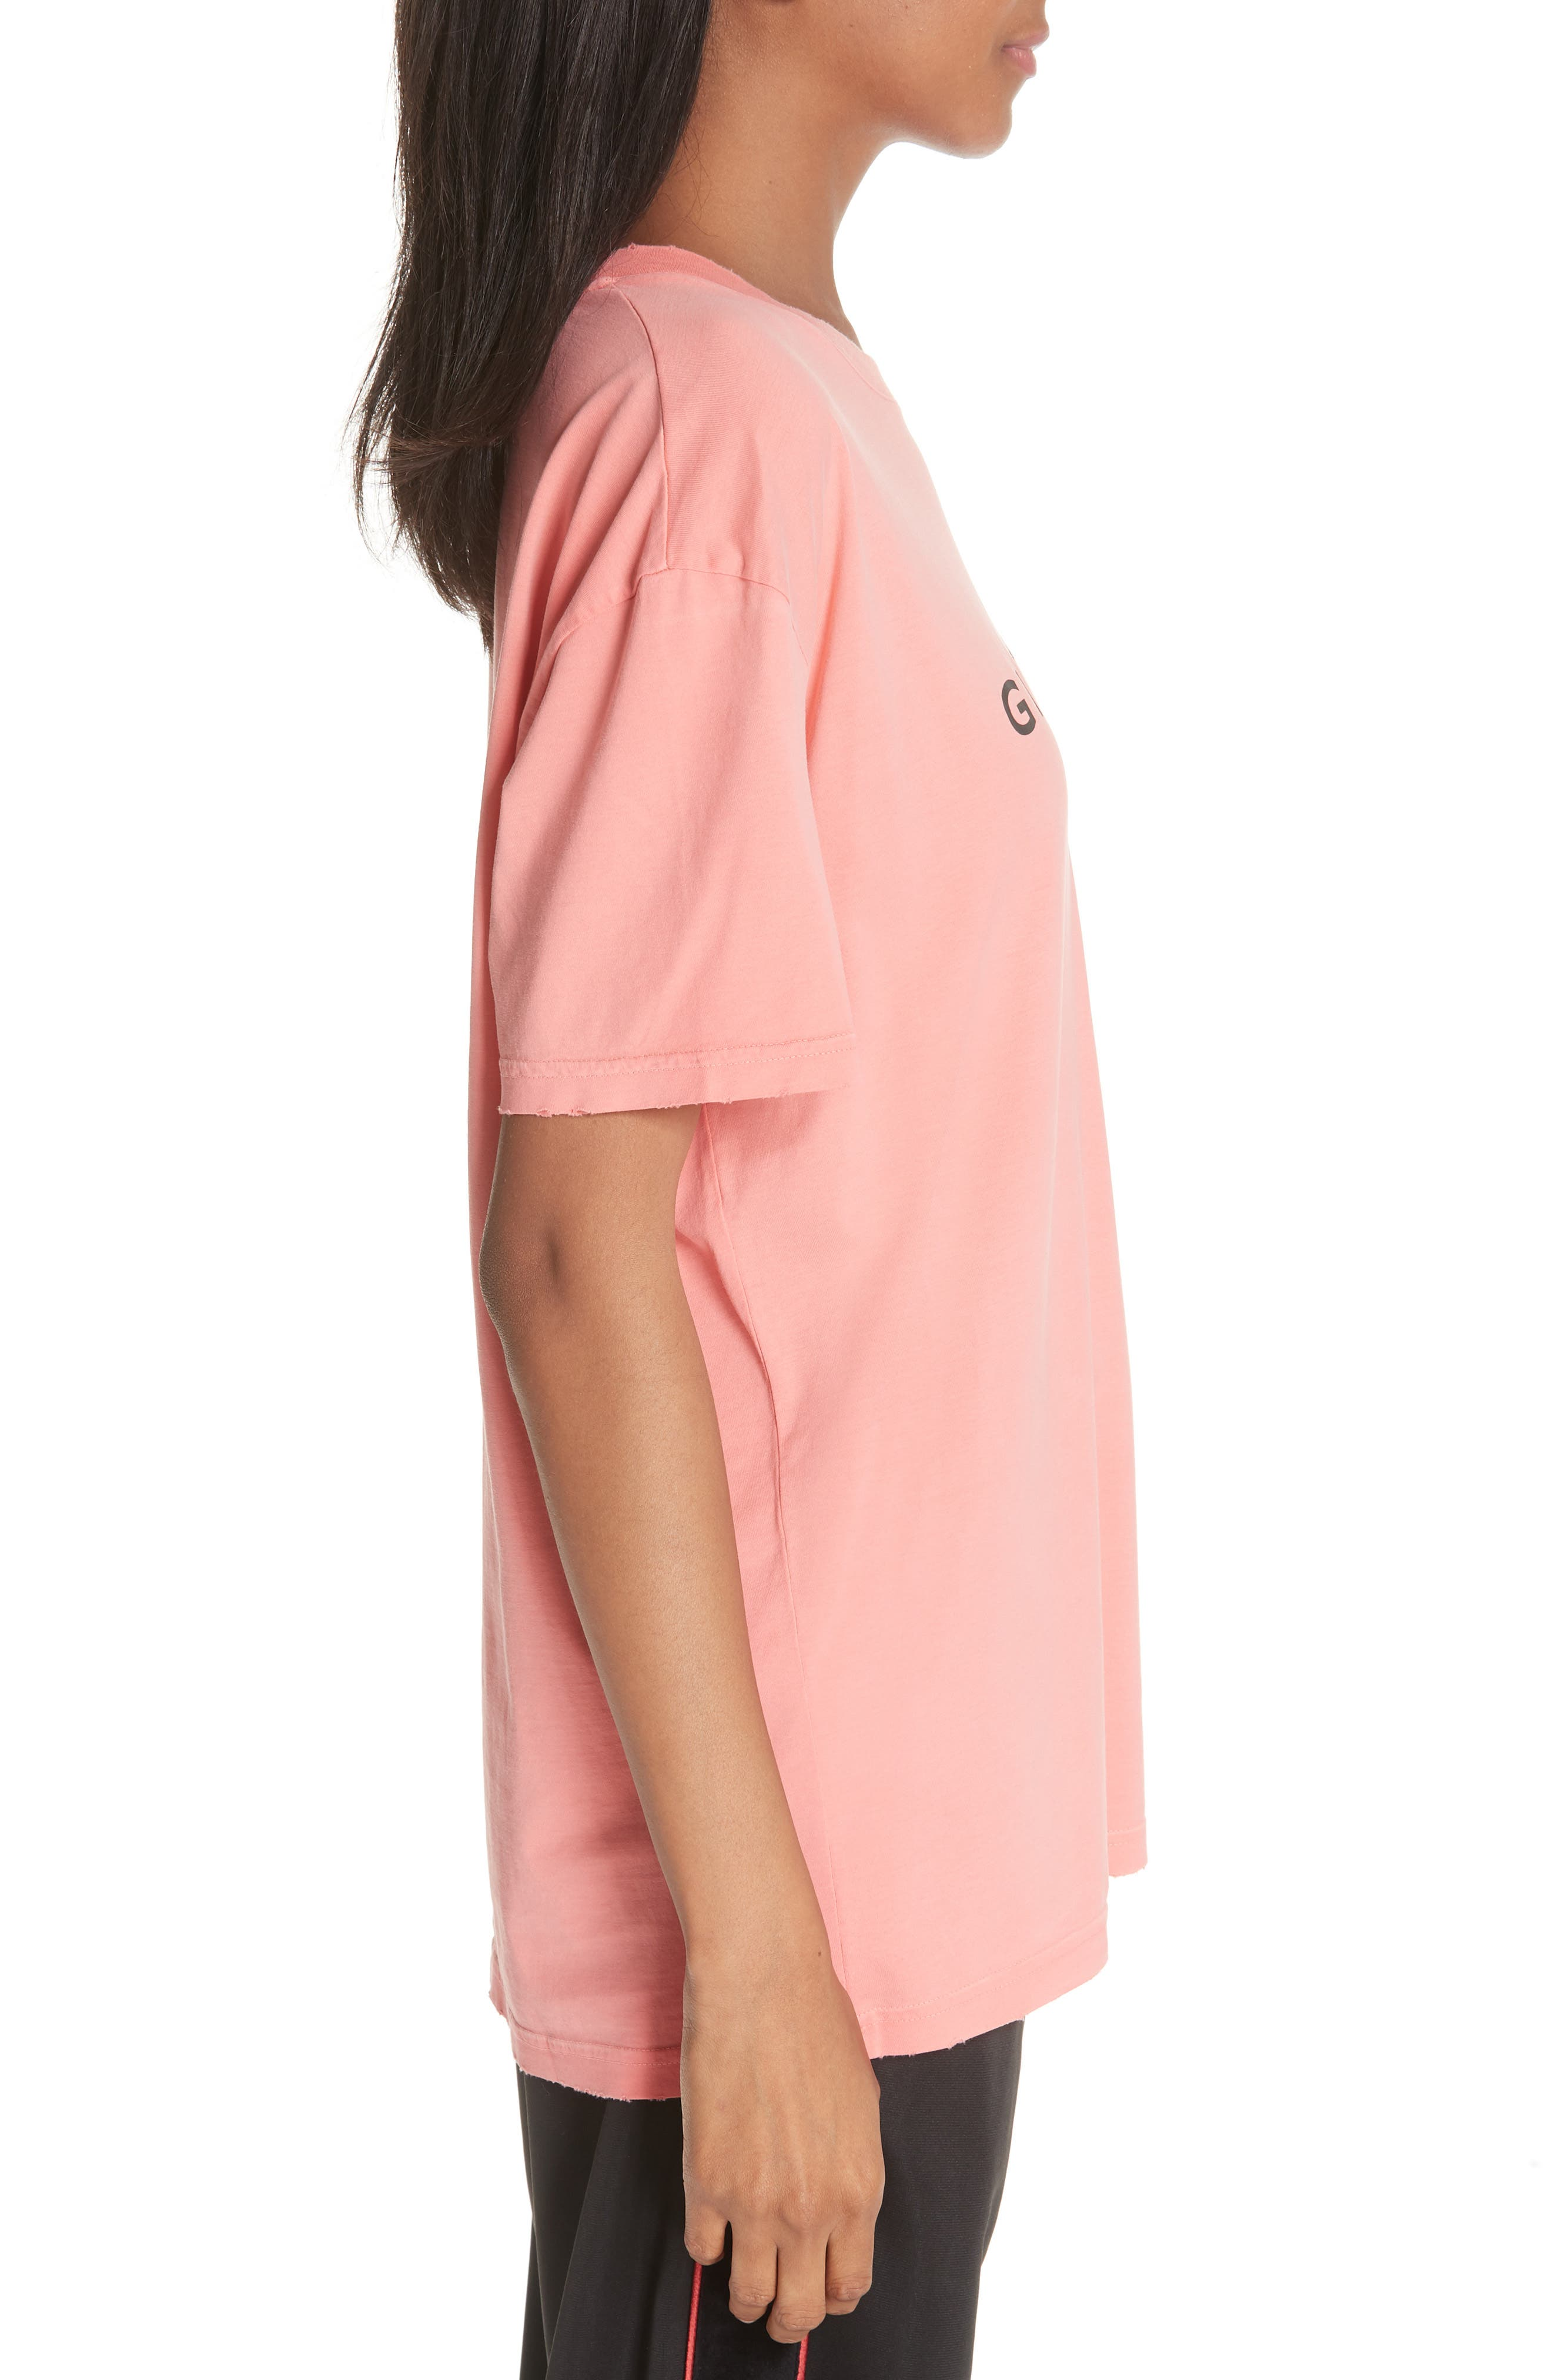 GIVENCHY,                             Distressed Logo Tee,                             Alternate thumbnail 3, color,                             CORAL